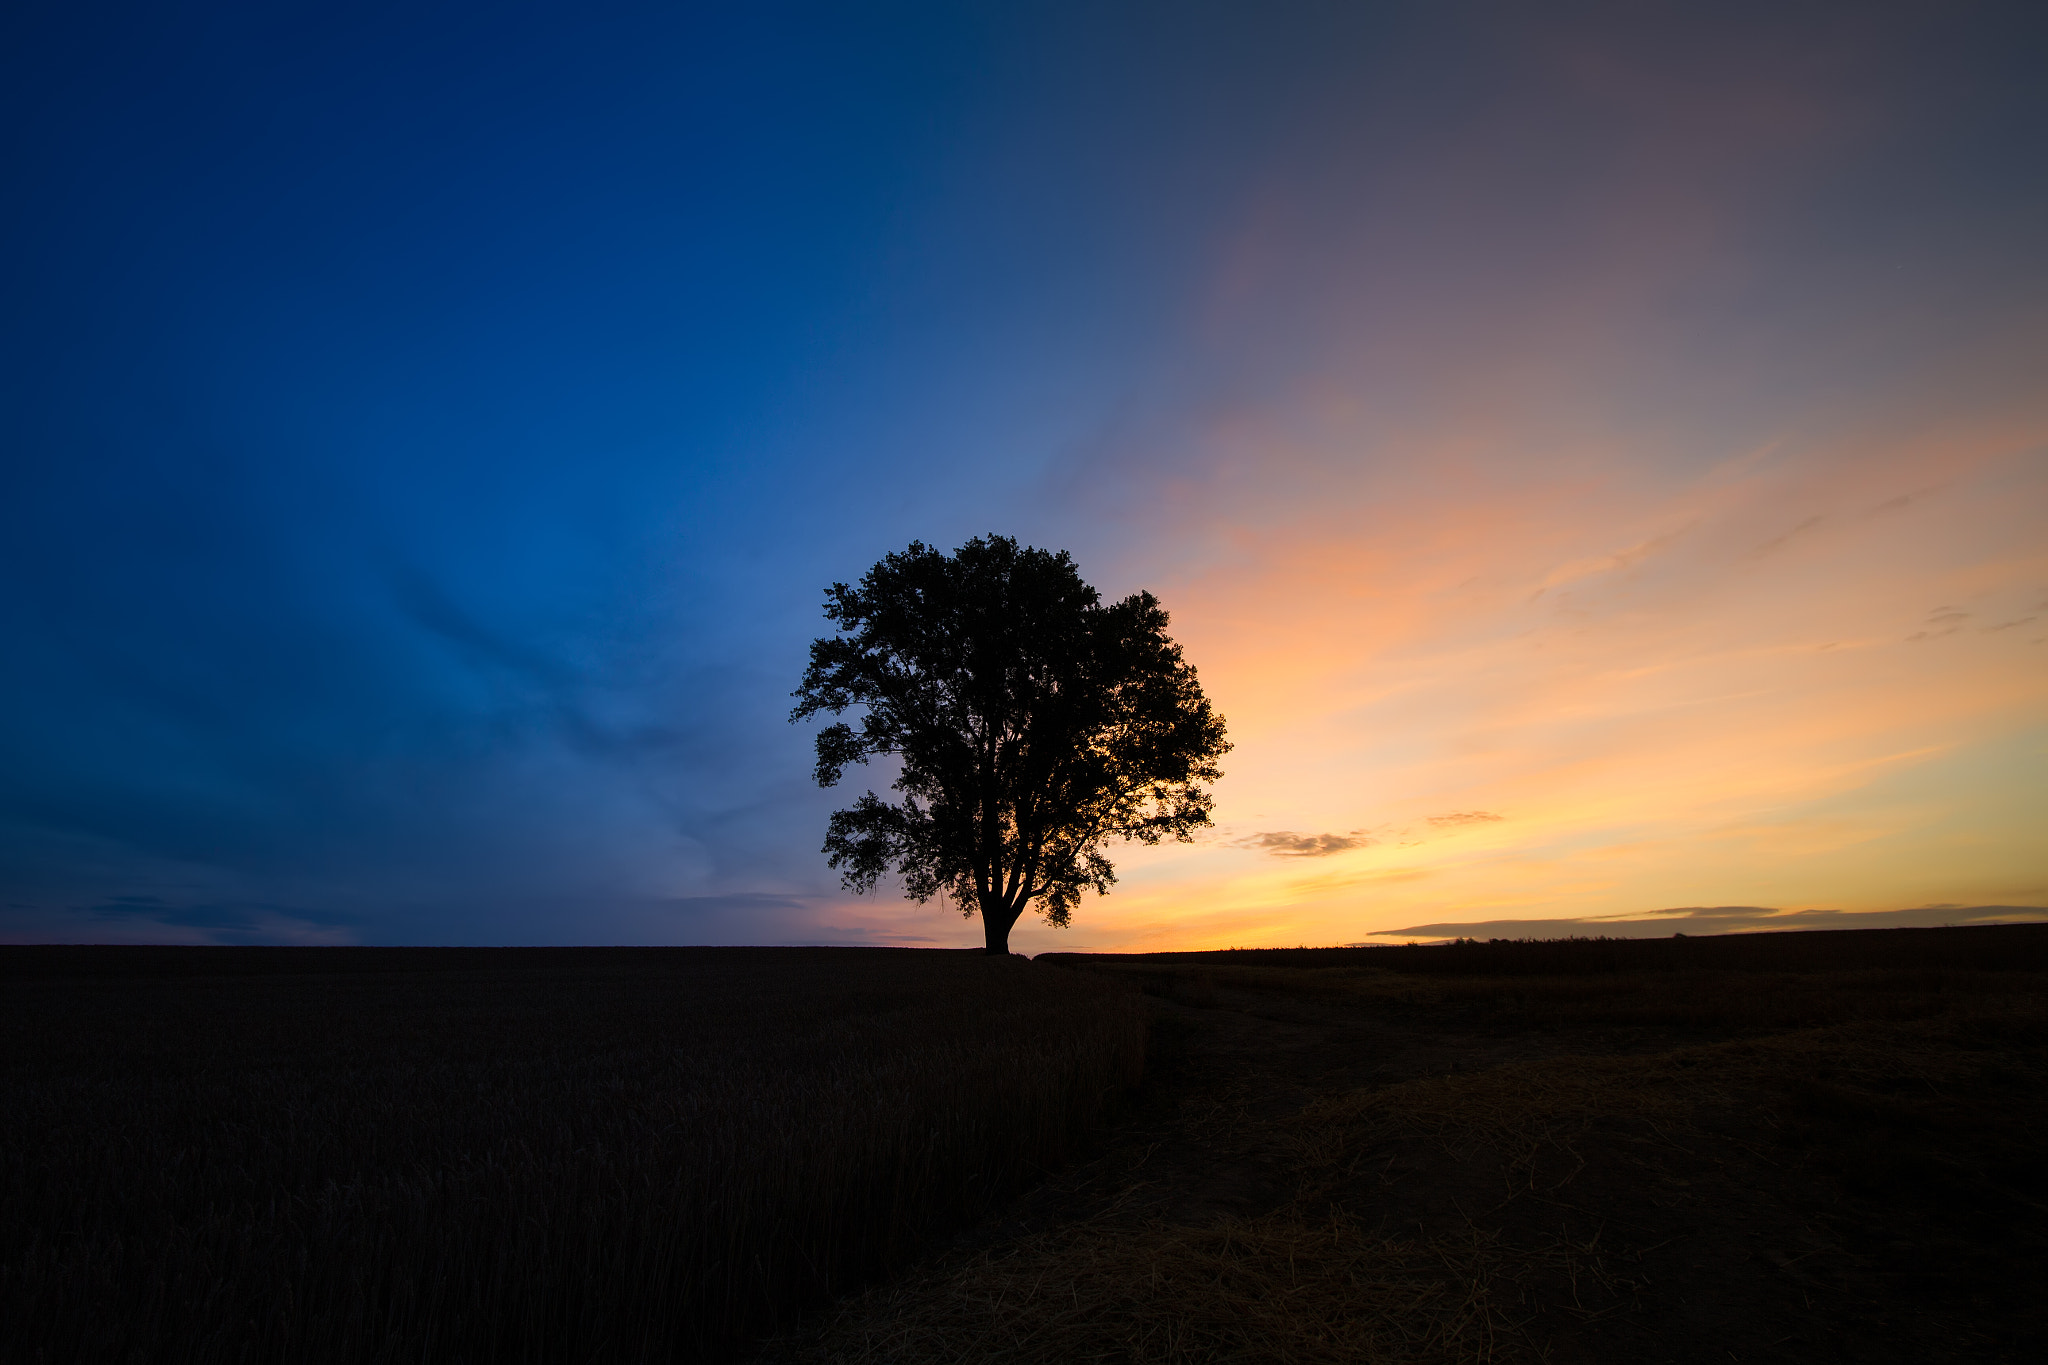 Photograph Isolation by Agustin Rafael Reyes on 500px